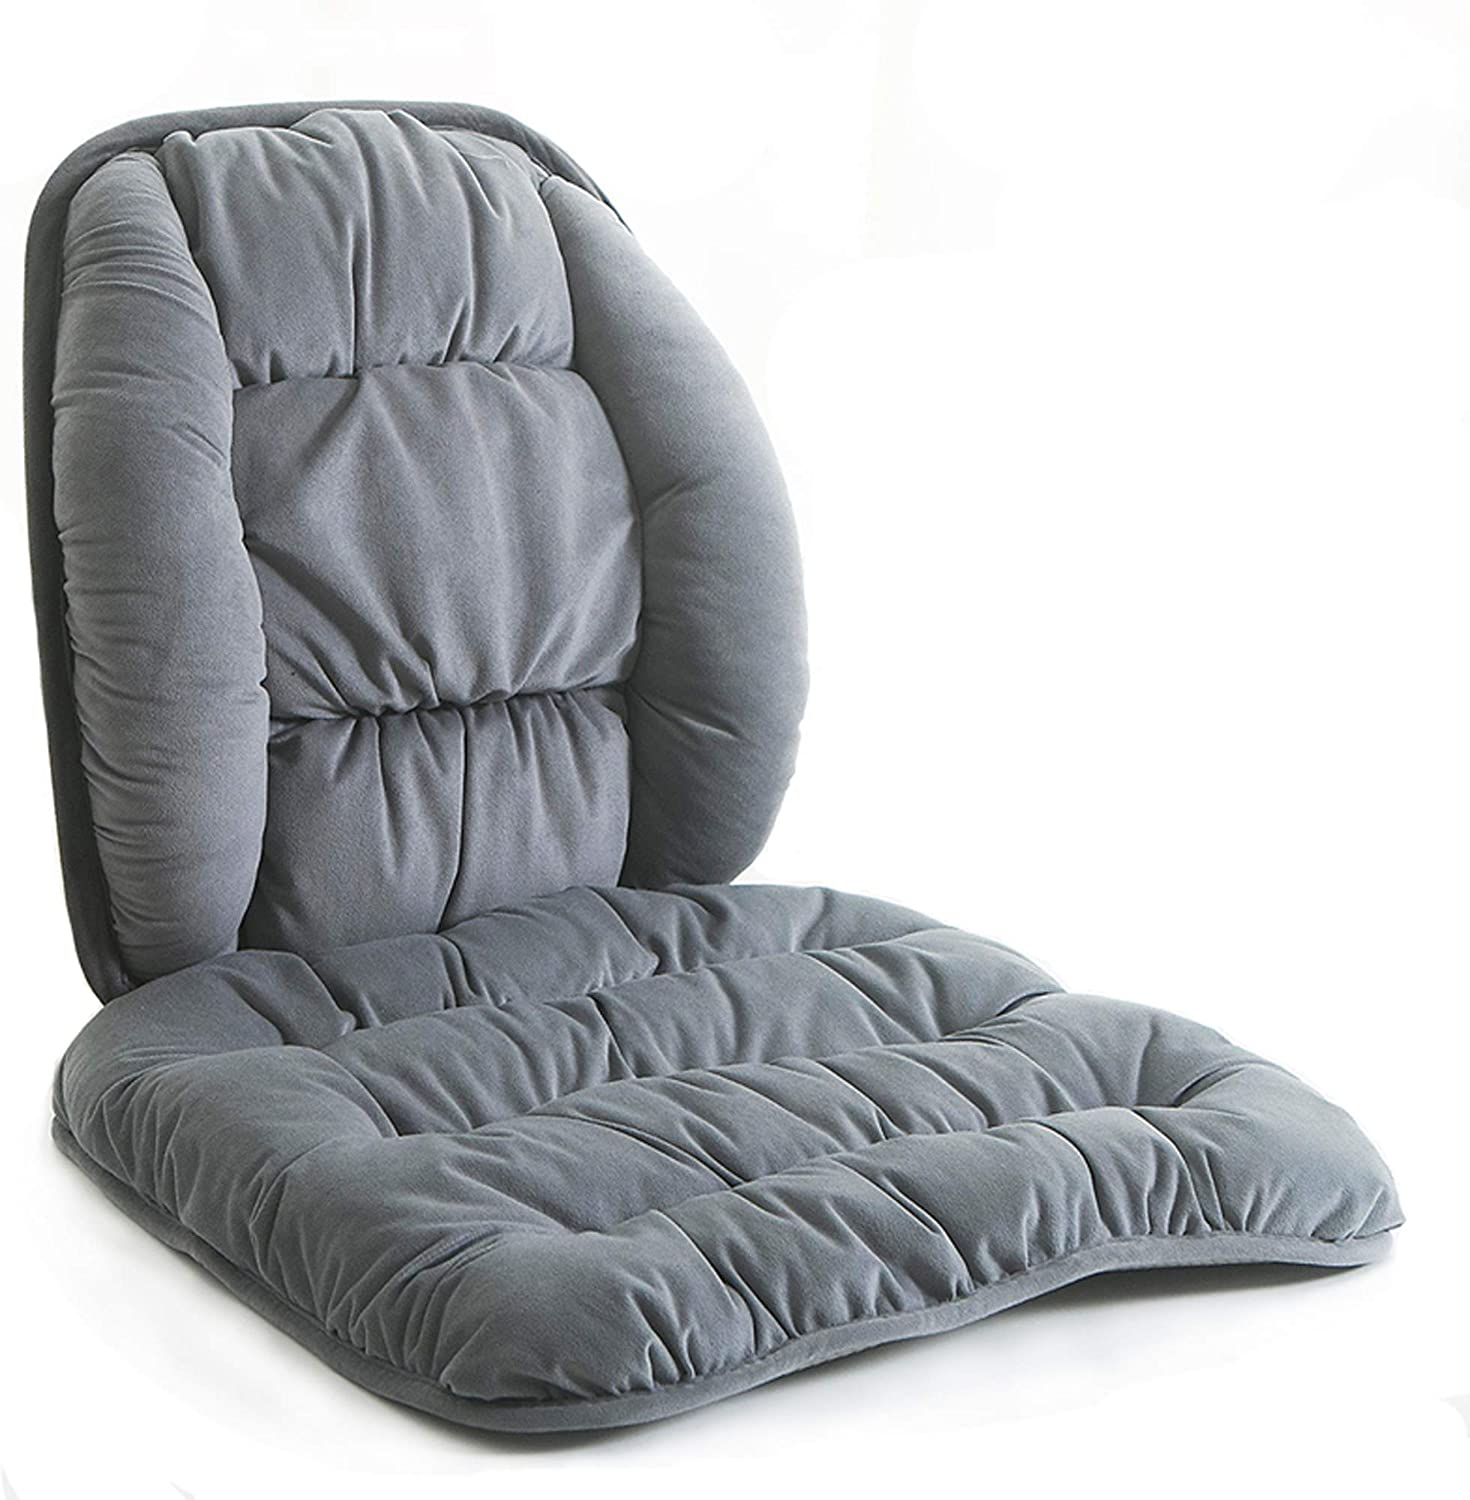 Ergonomic Back Pain Relief Lumbar Support Pillow And Anti Slip Bottom Chair Cushions Nonslip Car Seat Cushion And Back Pads With Adjustable Strap For Office,Dinning Room,Wicker,Lounge Chair,Auto Car Seats,Sofa,Wheelchair